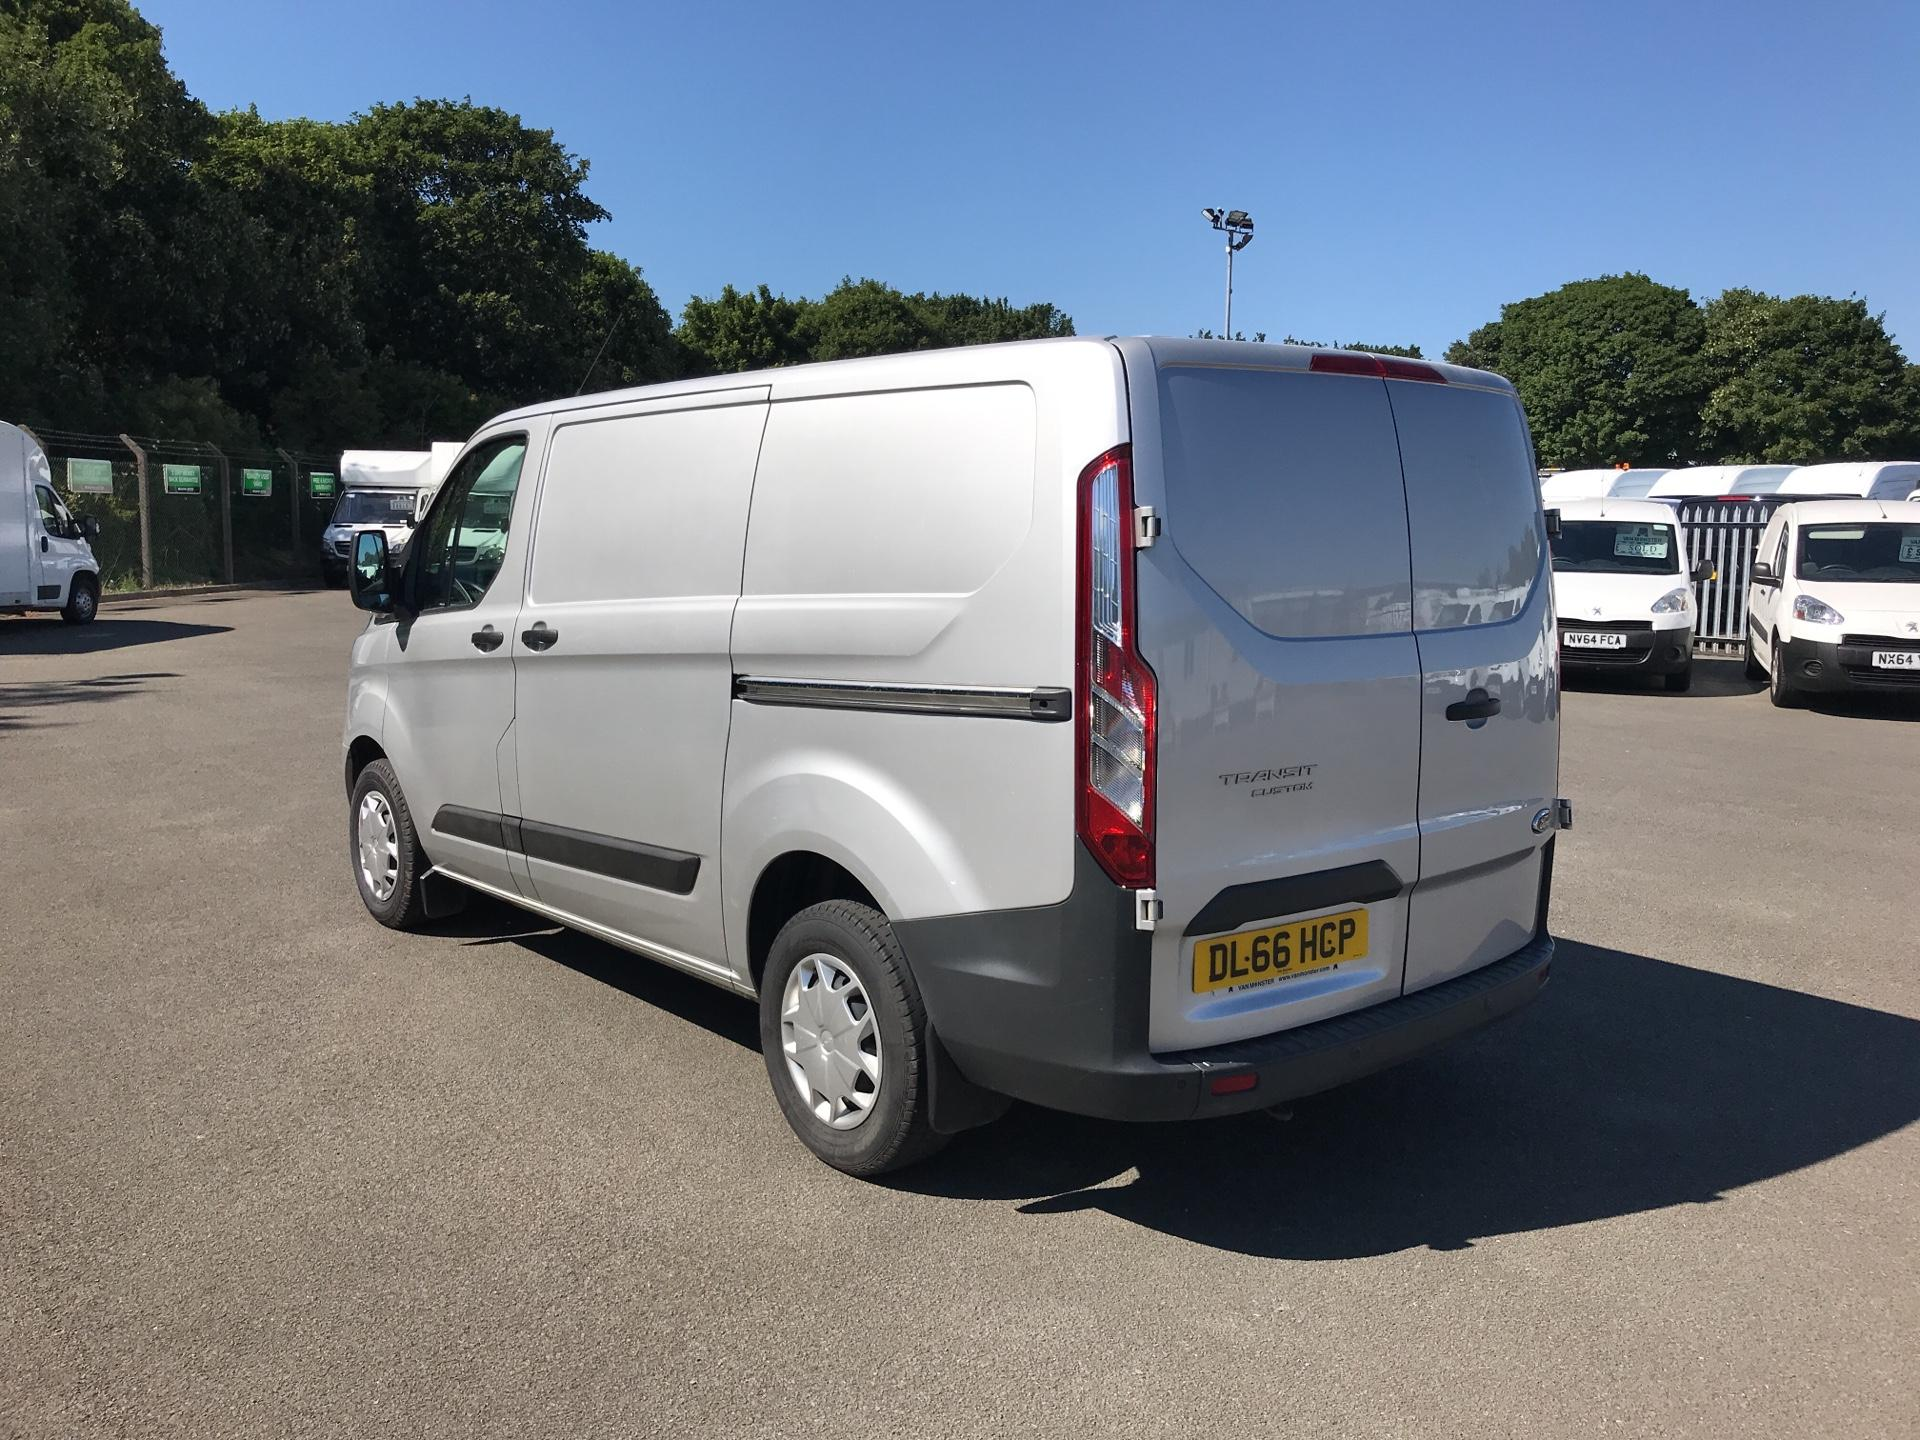 2016 Ford Transit Custom 270 L1 DIESEL FWD 2.2 TDCI 130PS LOW ROOF TREND VAN EURO 5 (DL66HCP) Thumbnail 5